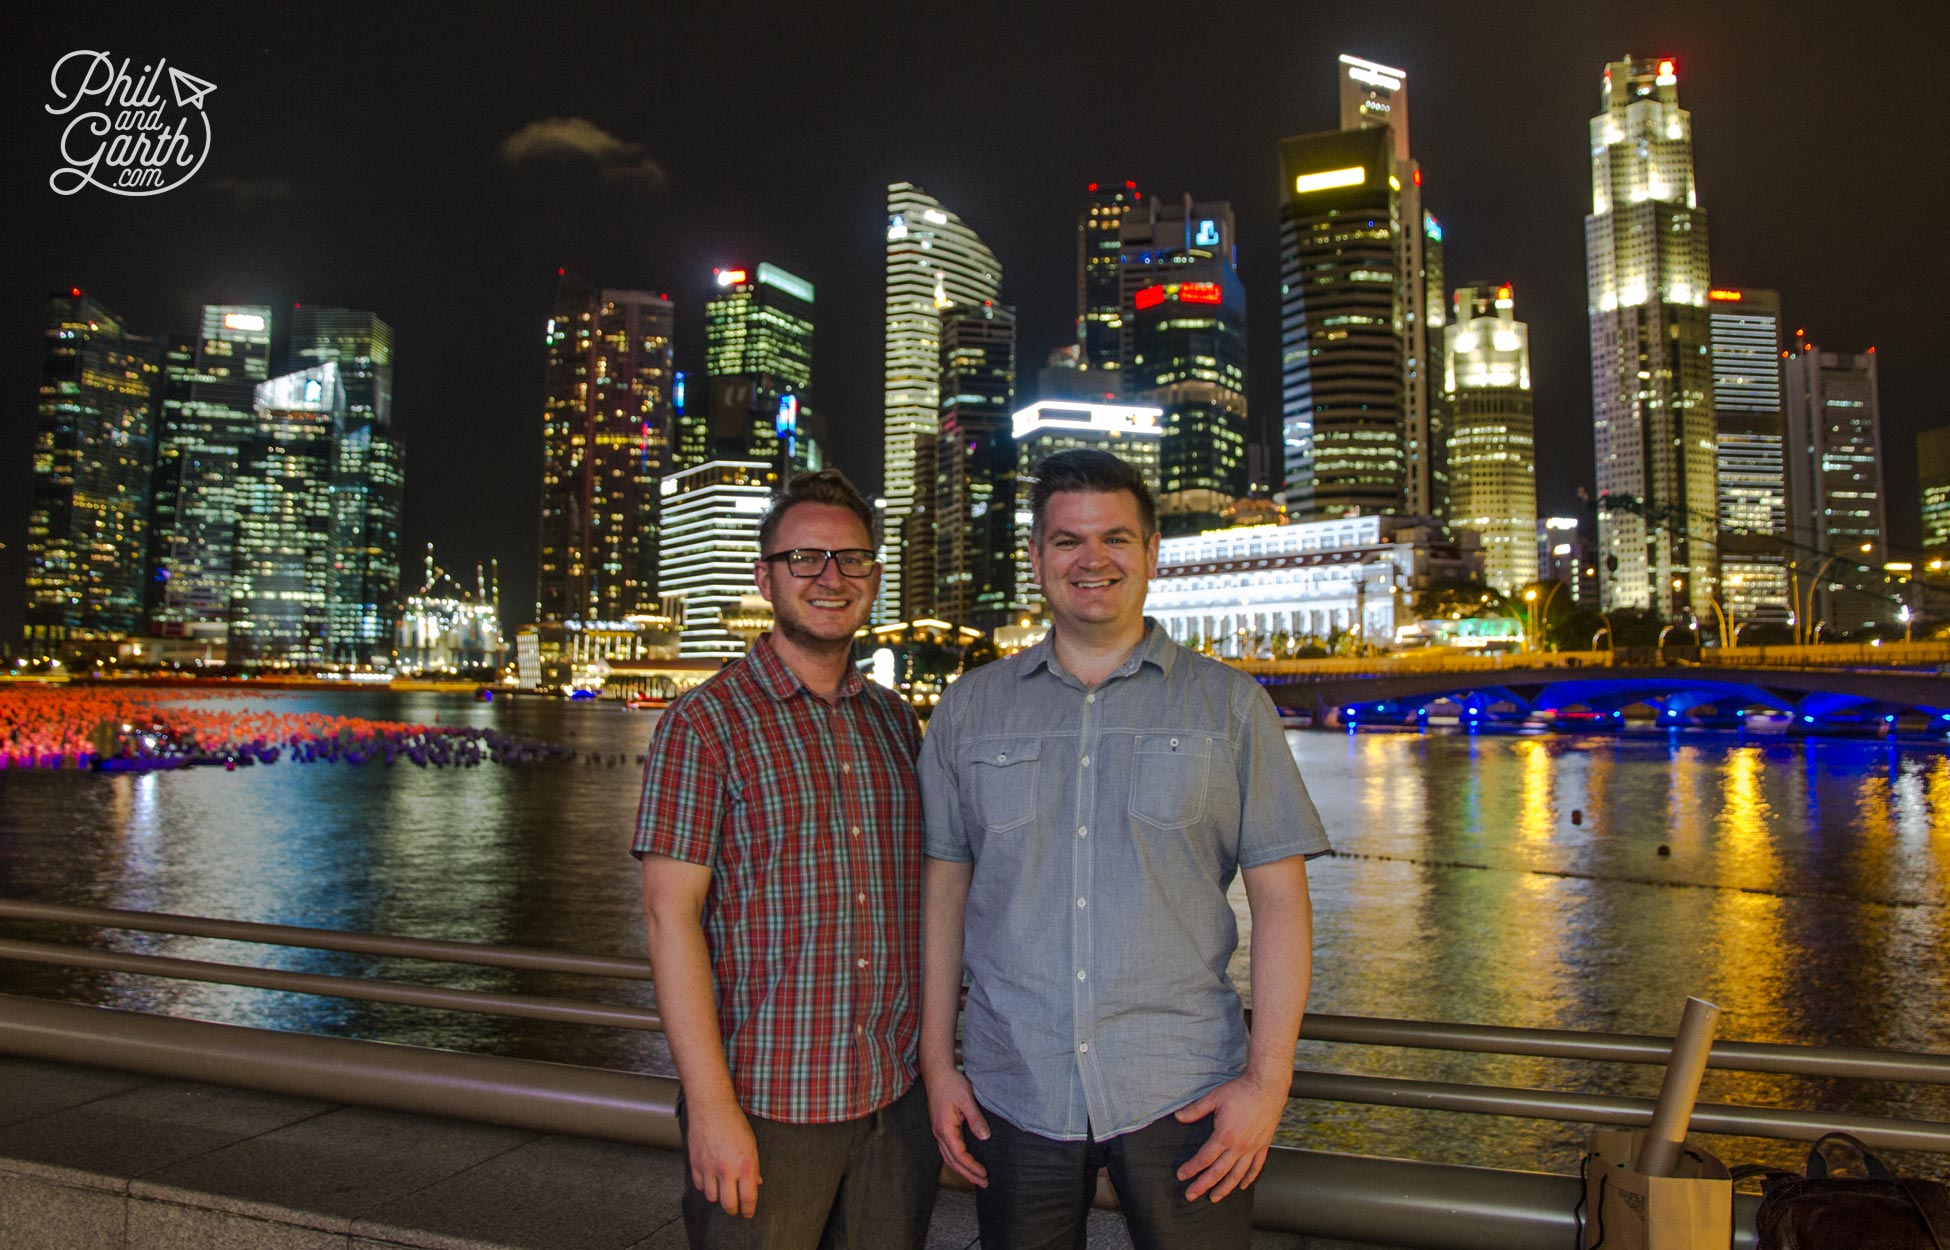 Garth and Phil in Singapore